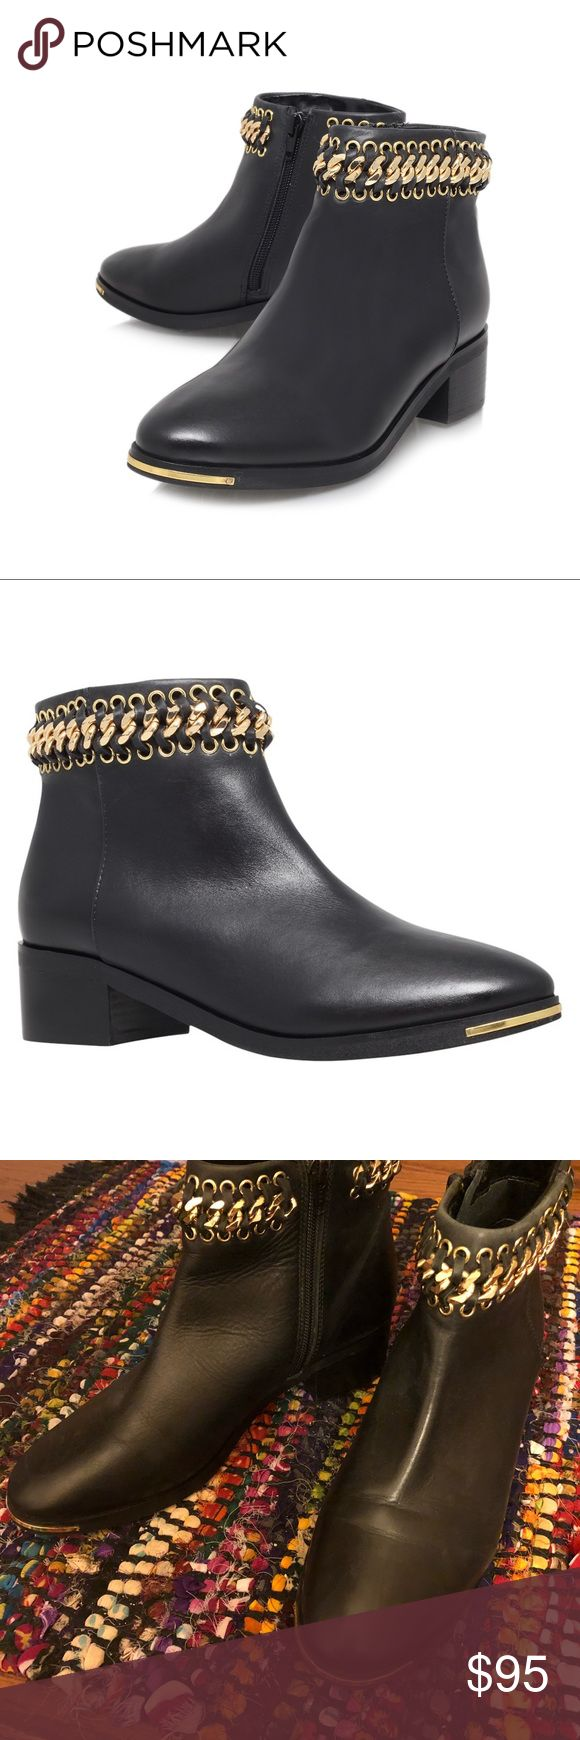 • KURT GEIGER • Speed Gold Chain Trim Booties EDGY COOL black and gold chain-trimmed booties by Kurt Geiger, a high end brand centered in the U.K!   Genuine leather upper, synthetic lining, 2 inch heel.   Worn twice! Bought them for myself, and the 8.5 was comfortable in the store, but after walking around an airport I realized they were too small for my 9-9.5 feet! Bummer! These are really beautiful and in excellent condition! Kurt Geiger Shoes Ankle Boots & Booties